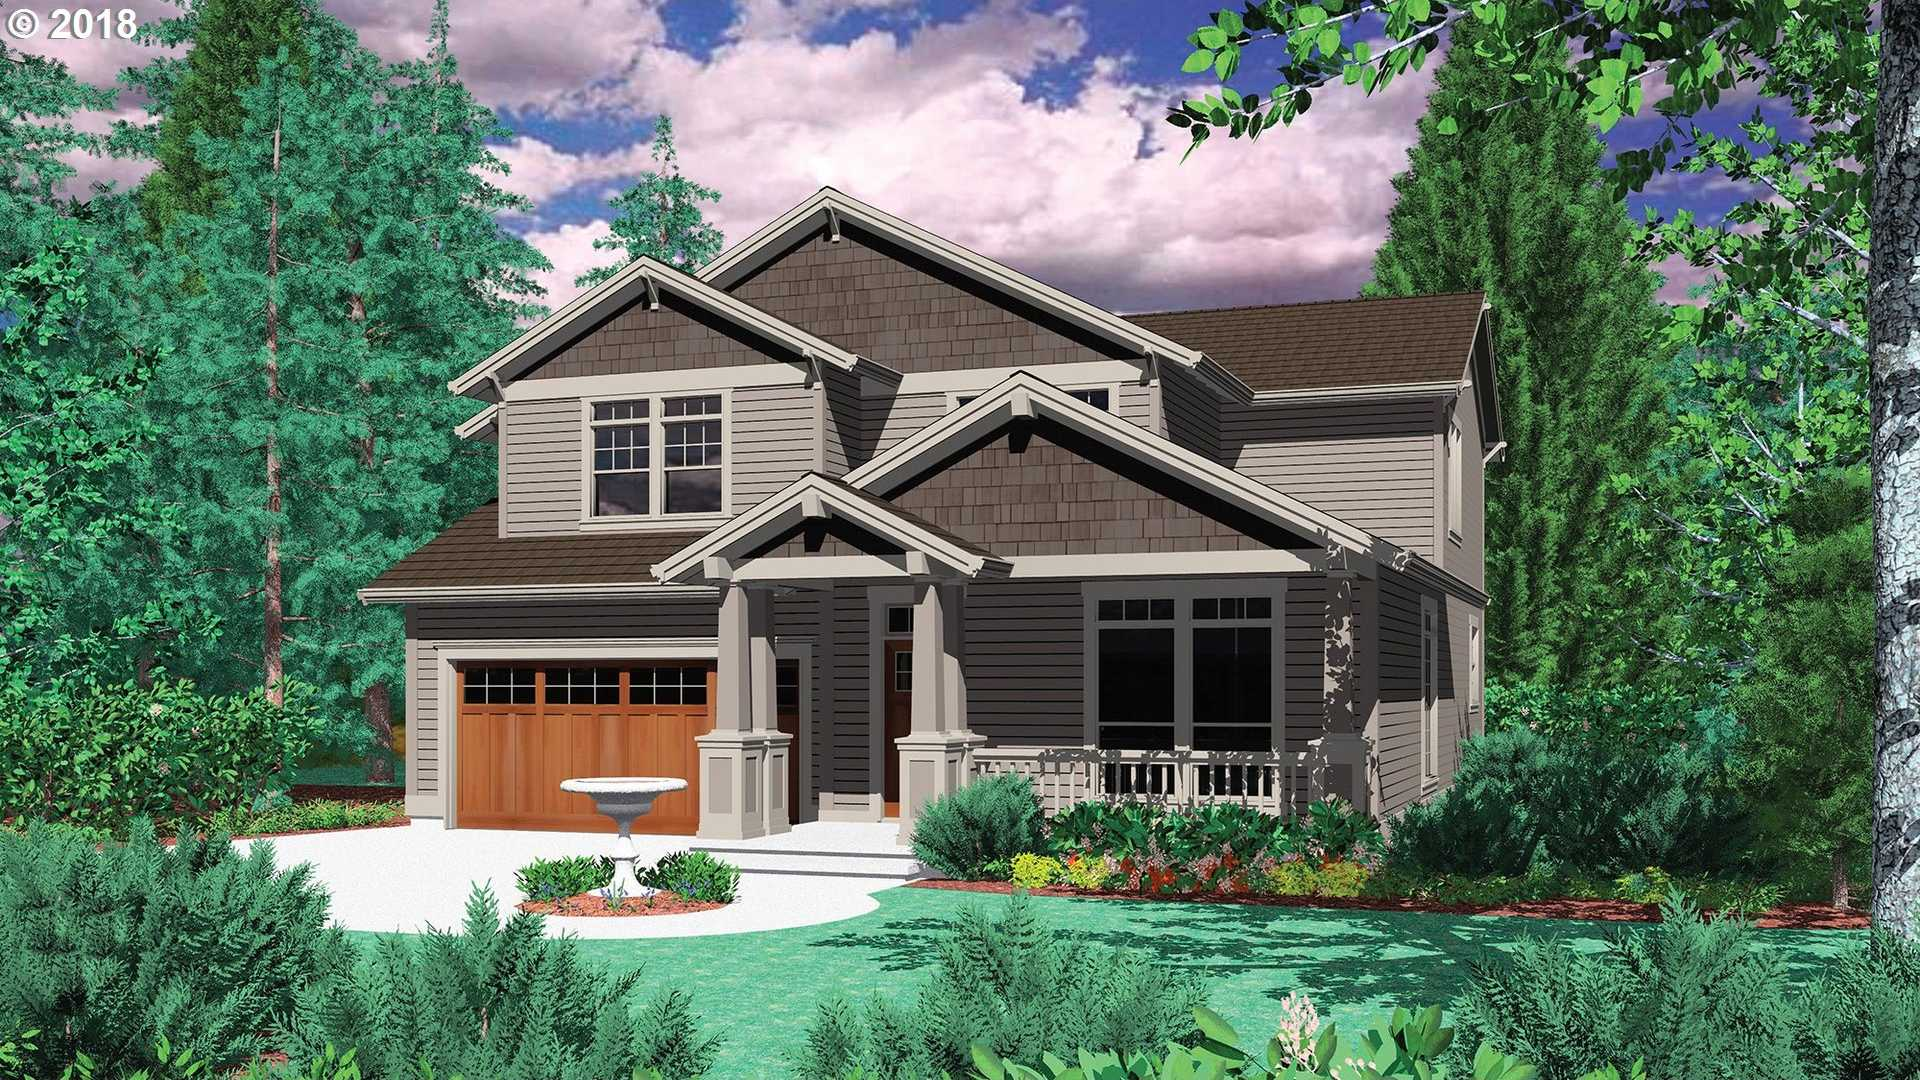 $485,000 - 4Br/3Ba -  for Sale in Big Oak At Brookside Lot 2, Gresham